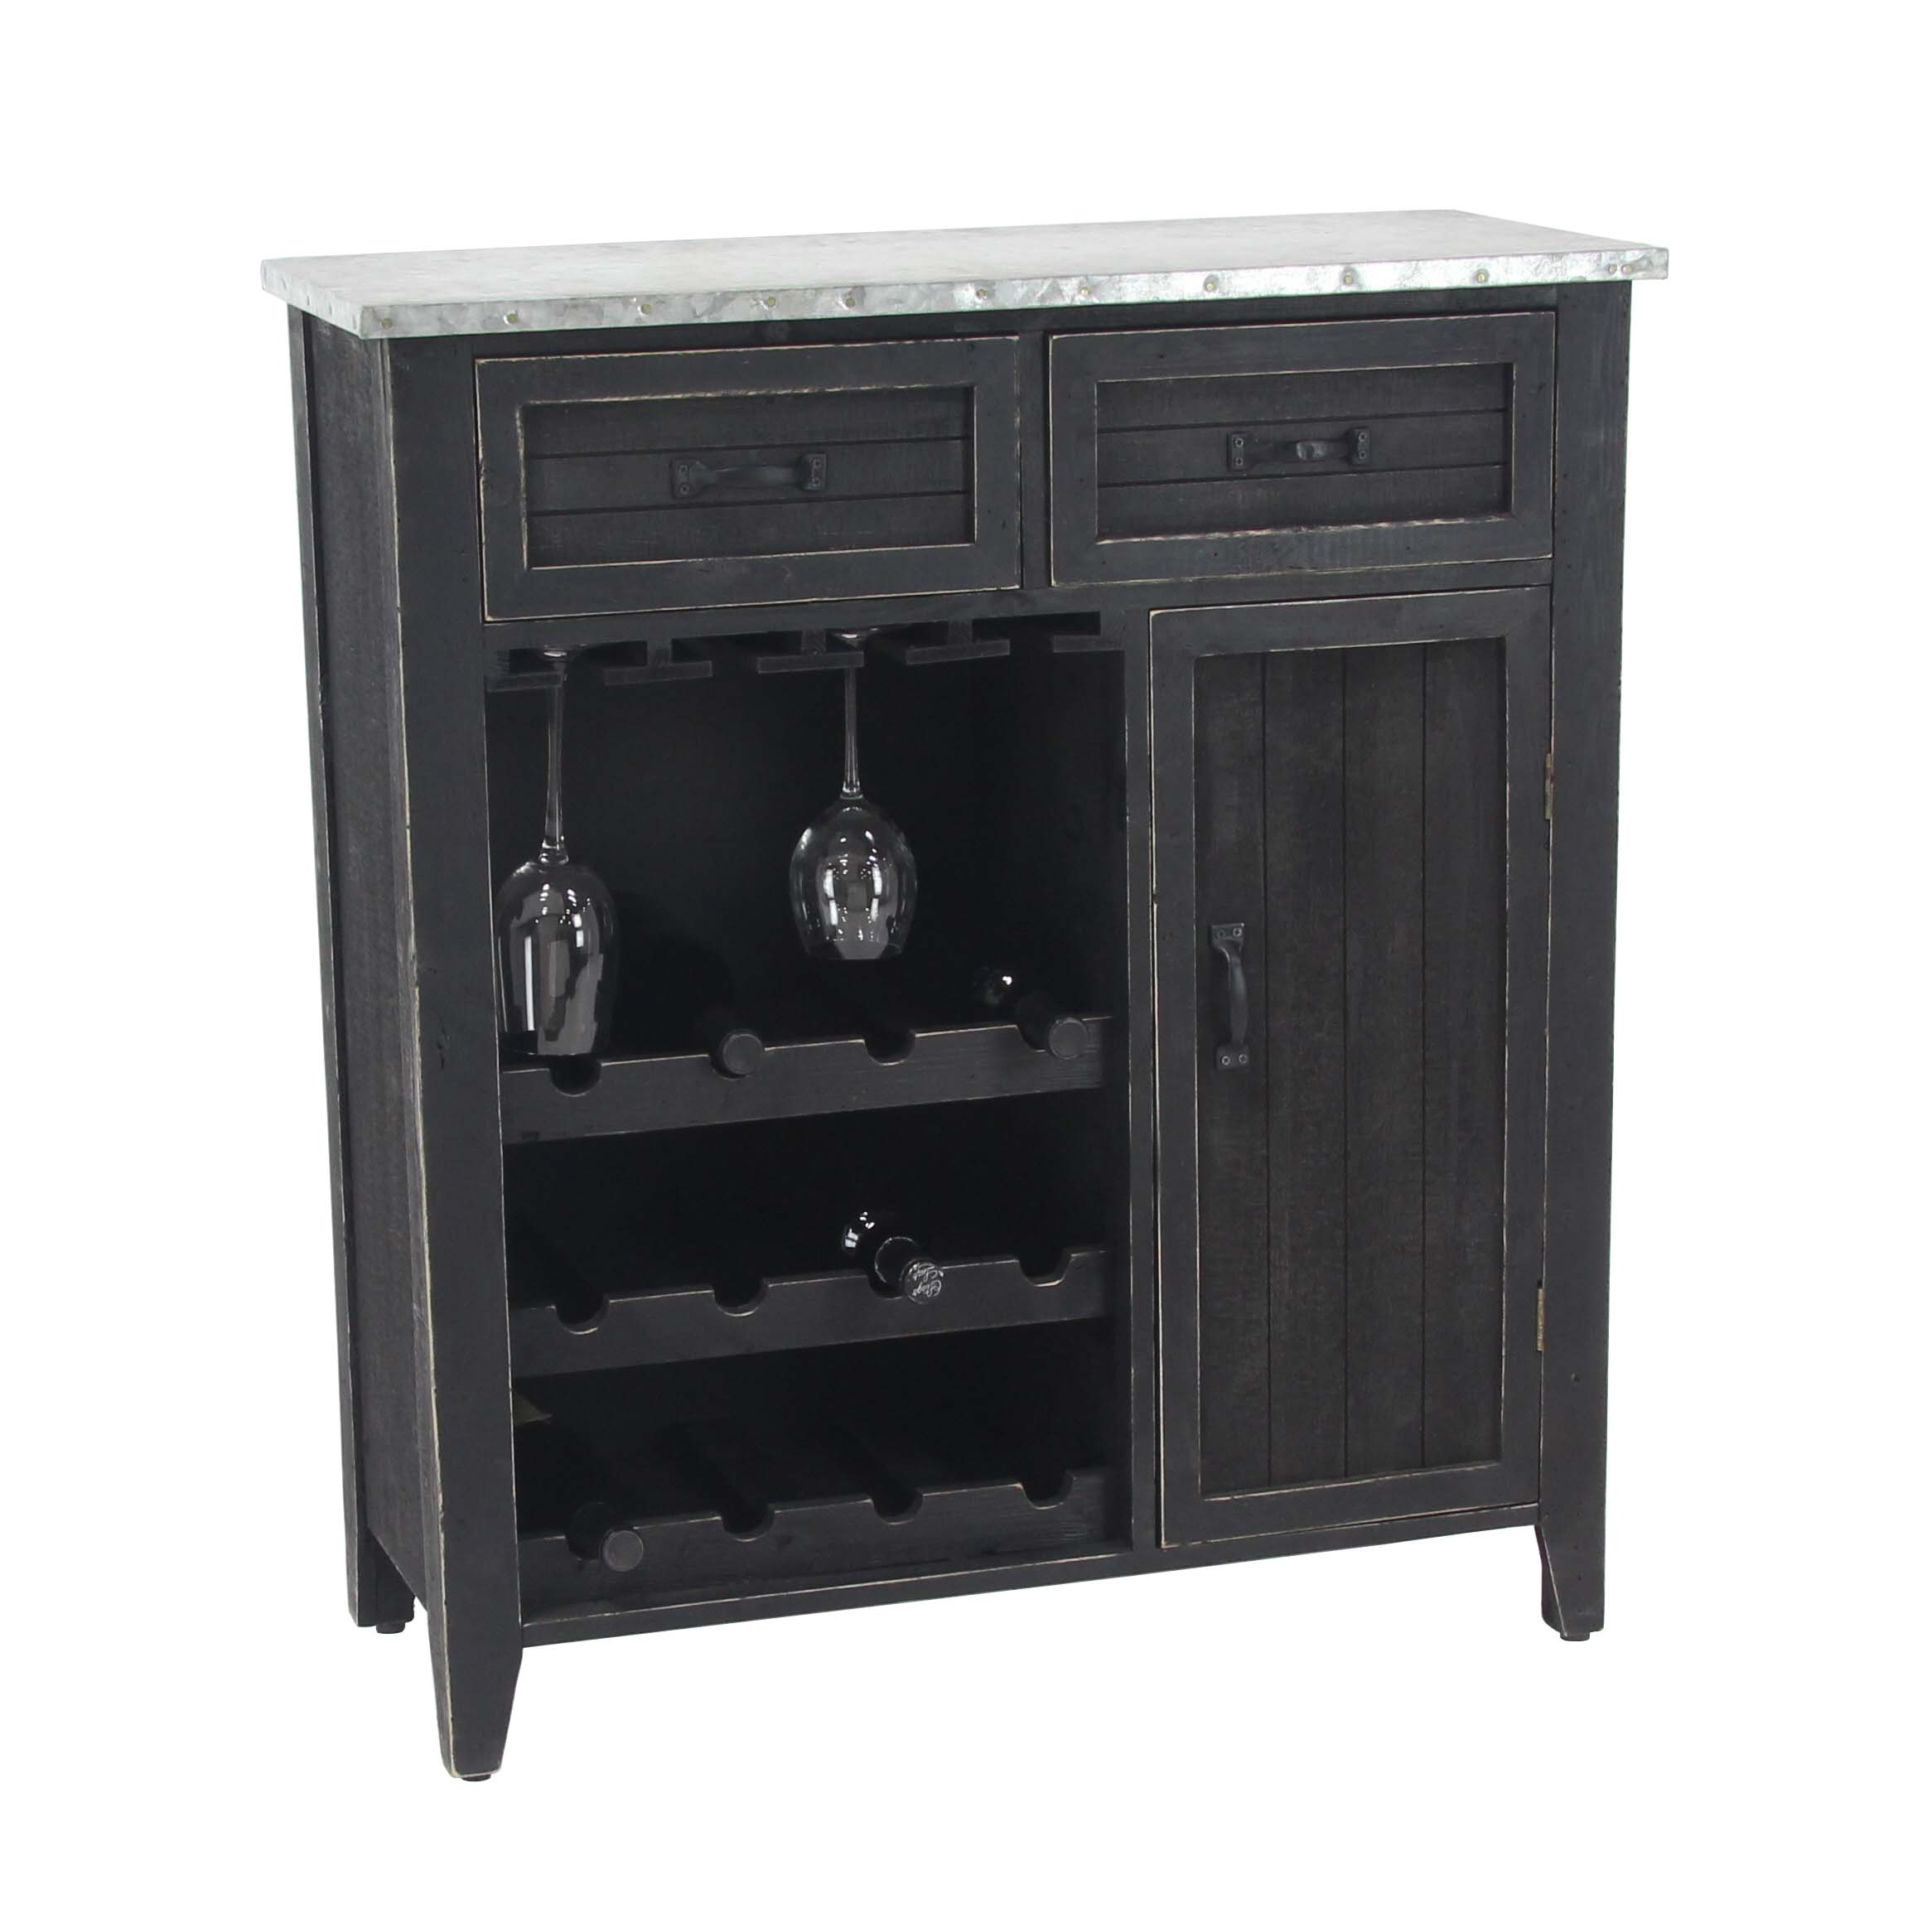 Decmode Traditional 12-Bottle Wood and Iron Wine Cabinet With Suspended Glass Rack, Black by DecMode